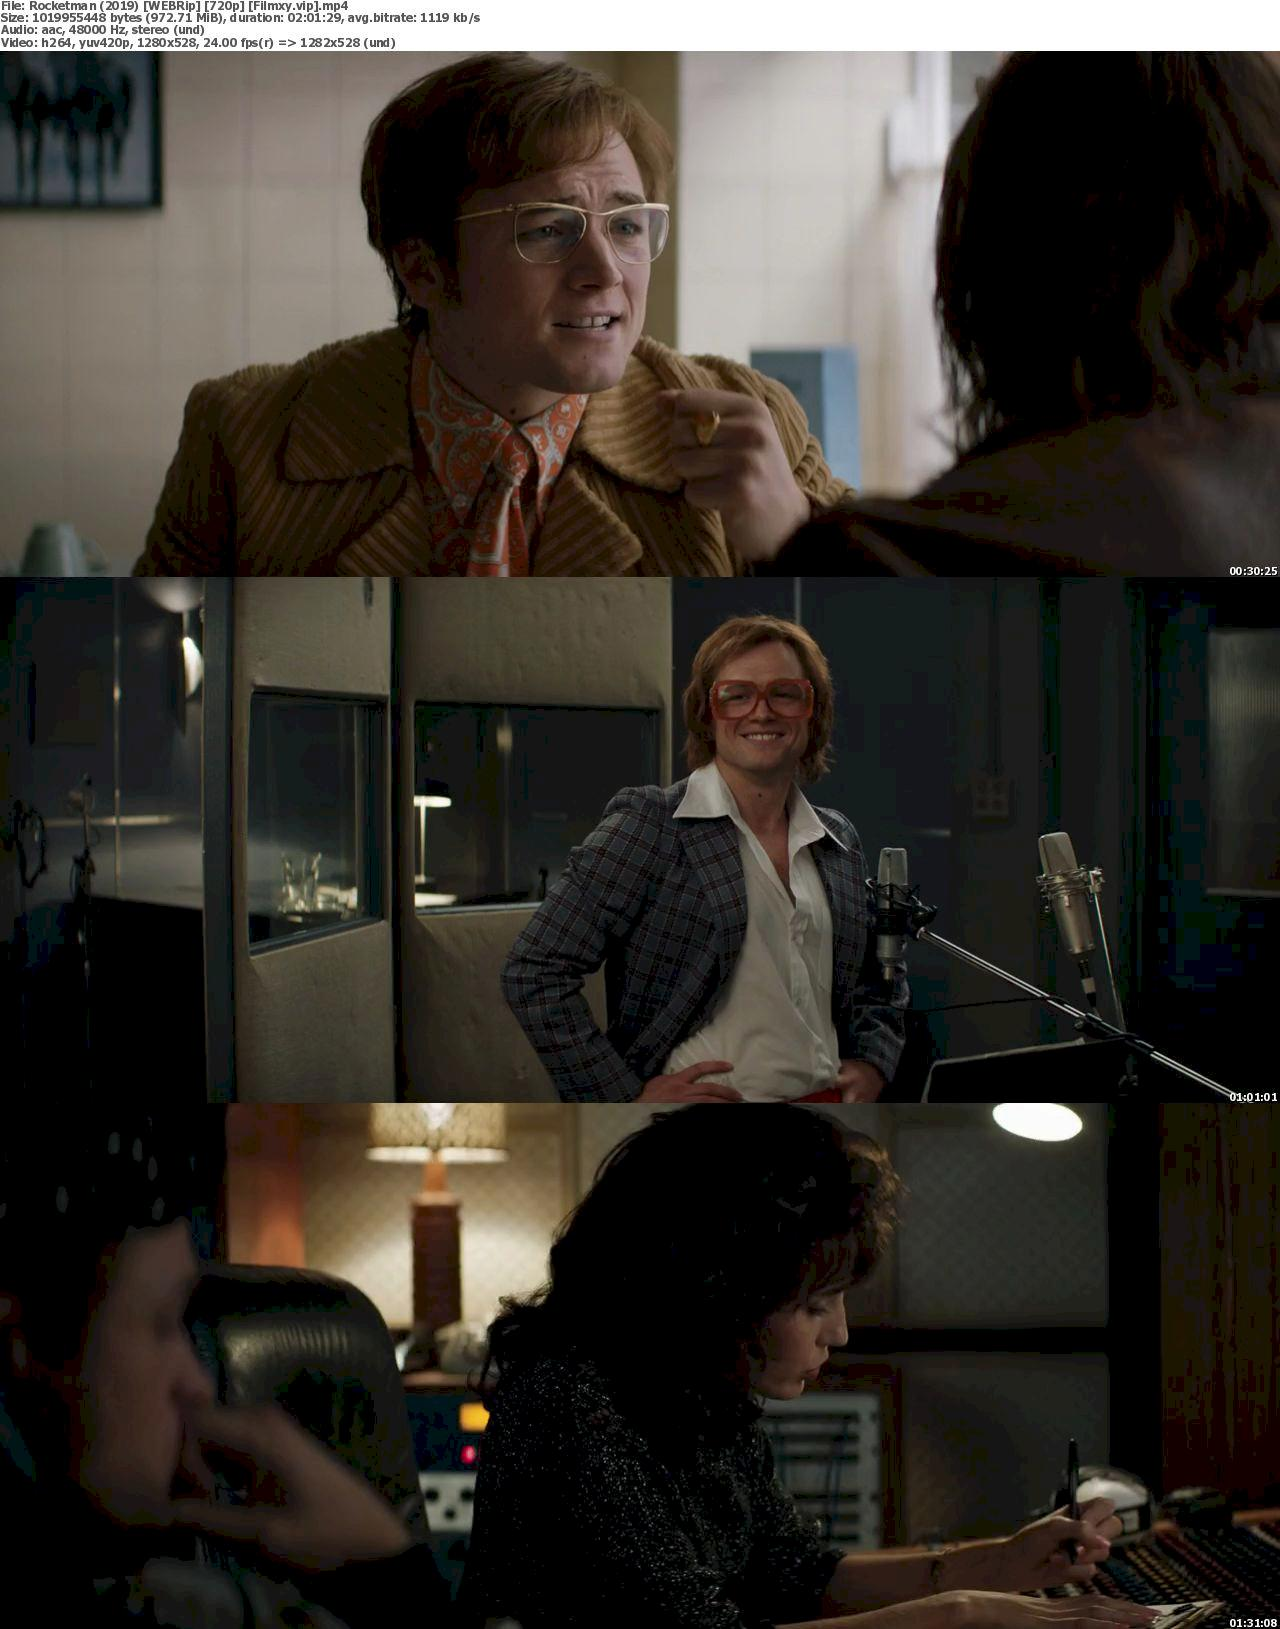 Rocketman (2019) [720p & 1080p] WEB-Rip Free Movie Watch Online & Download 720p Screenshot